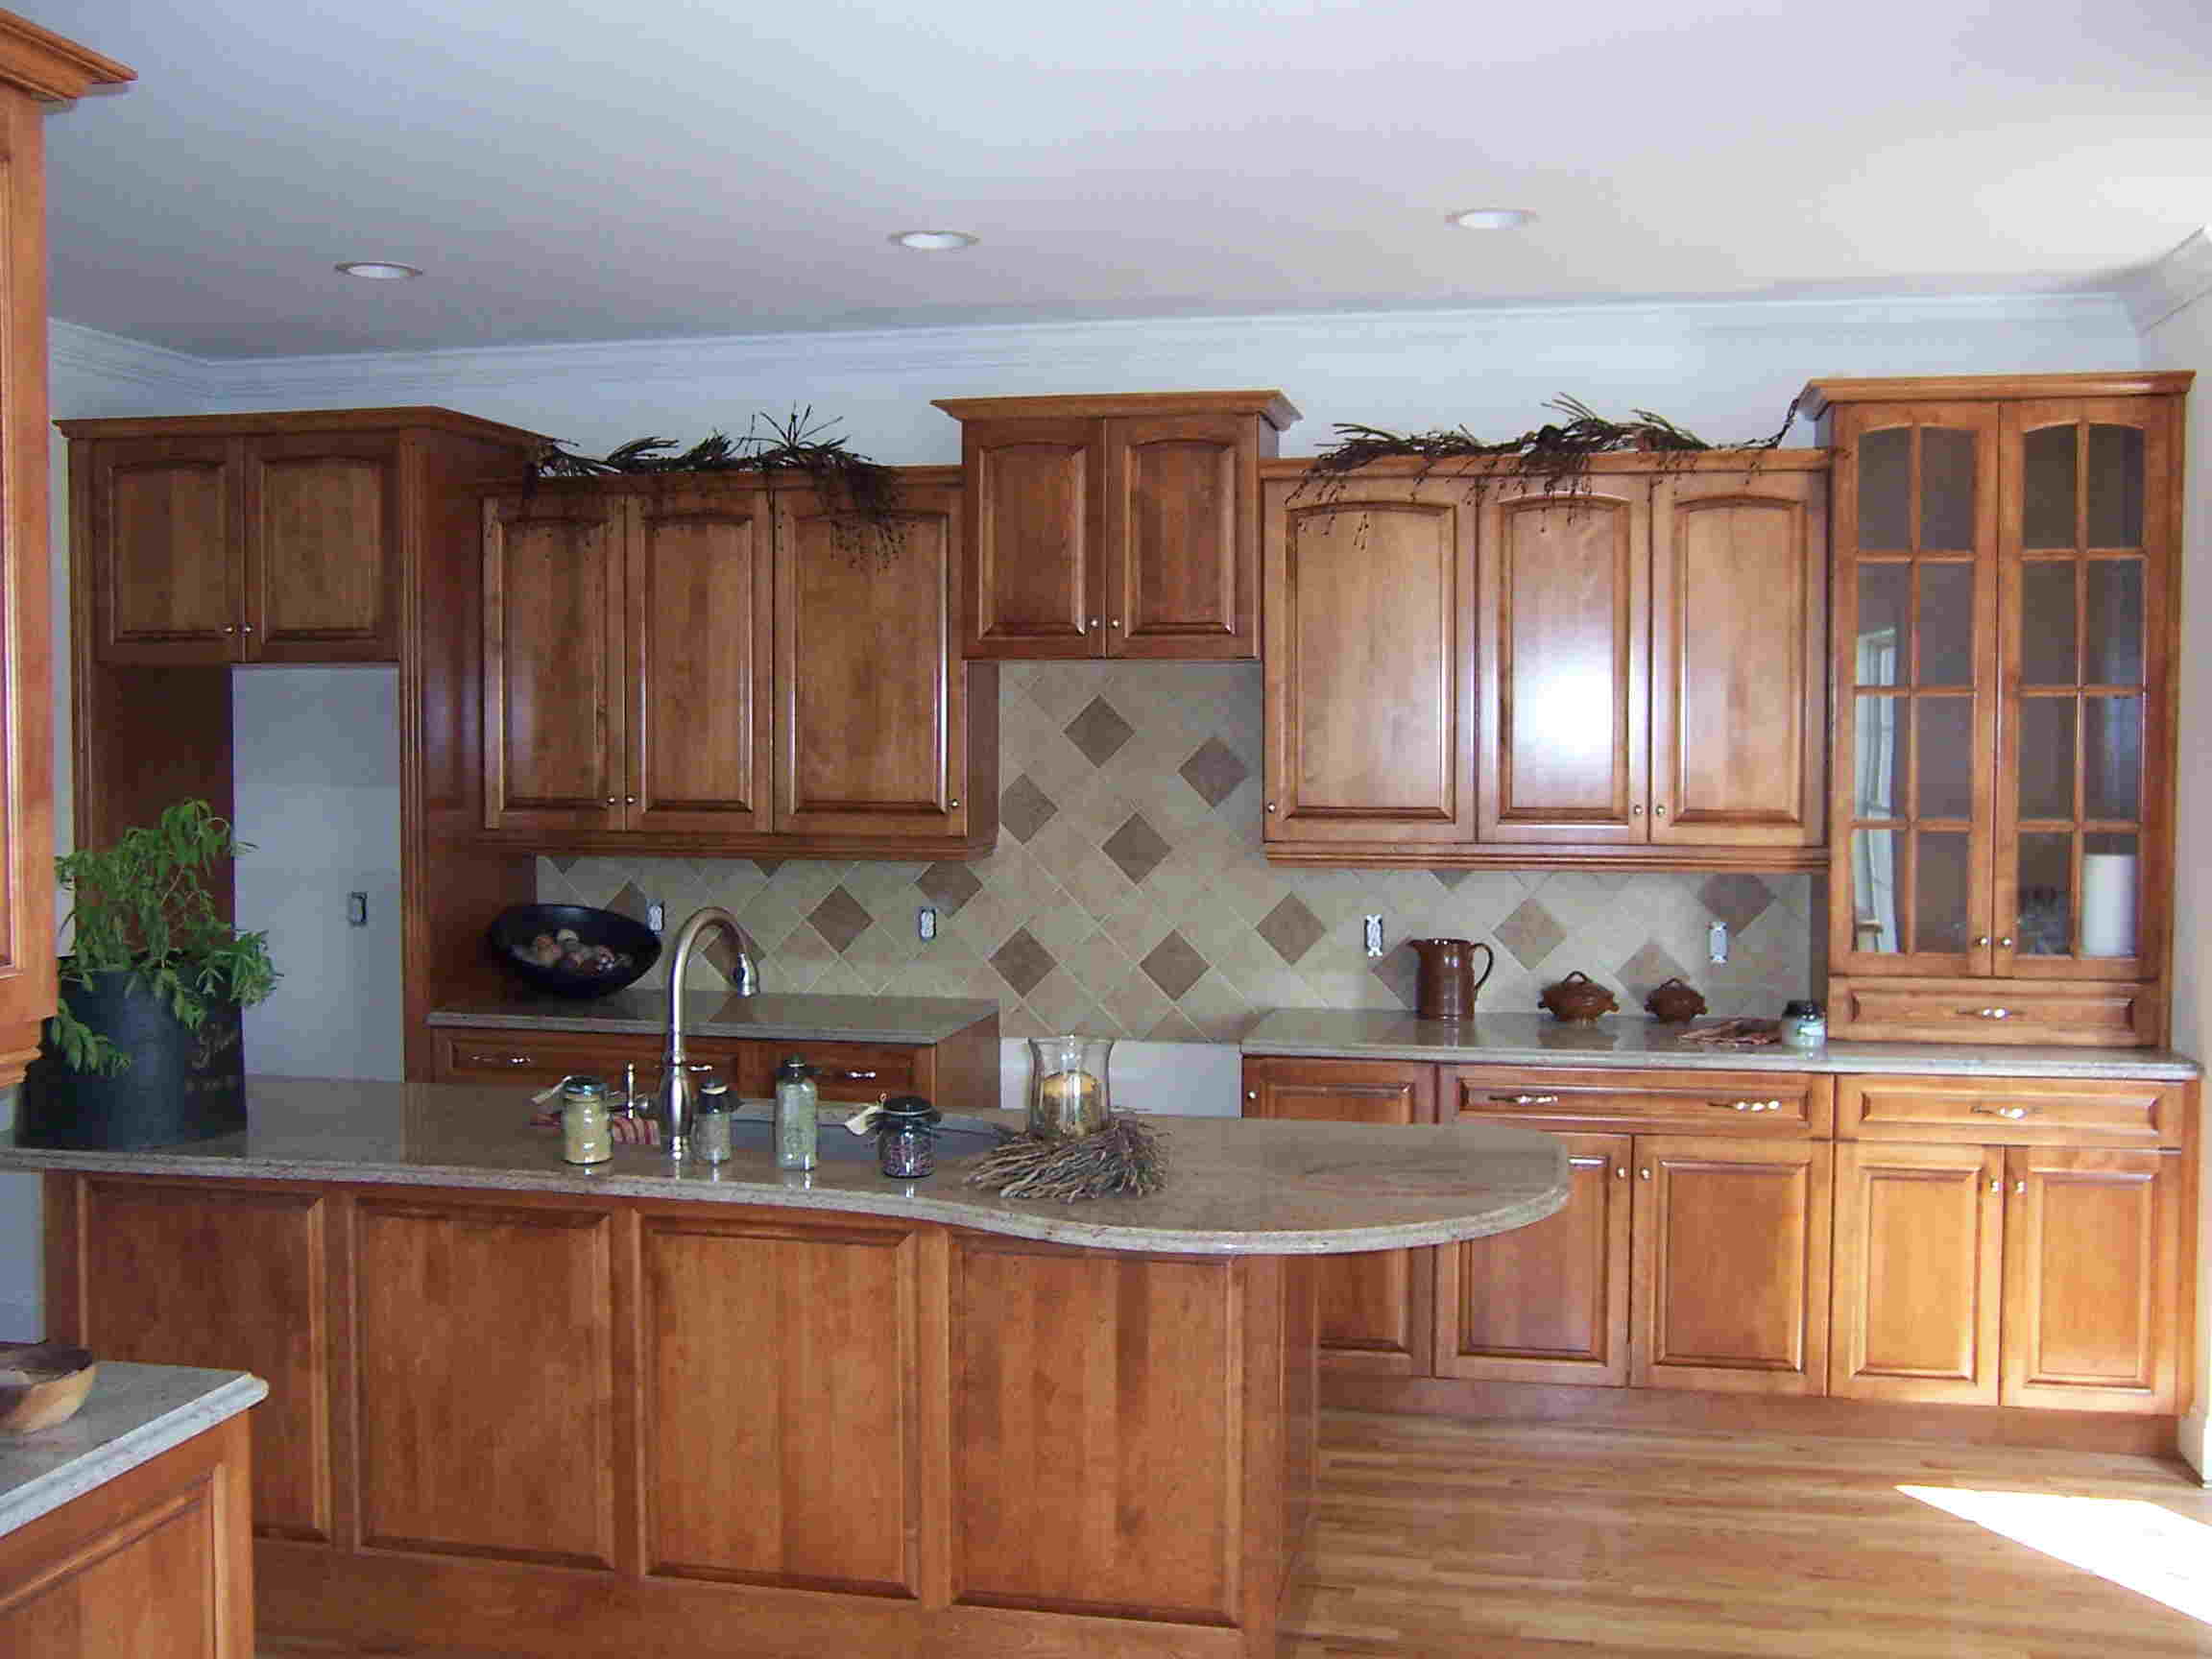 womancentric upper kitchen cabinets Whatever lighting approach you choose make sure you re in control From window coverings to dimmers lighting helps establish the mood for your next